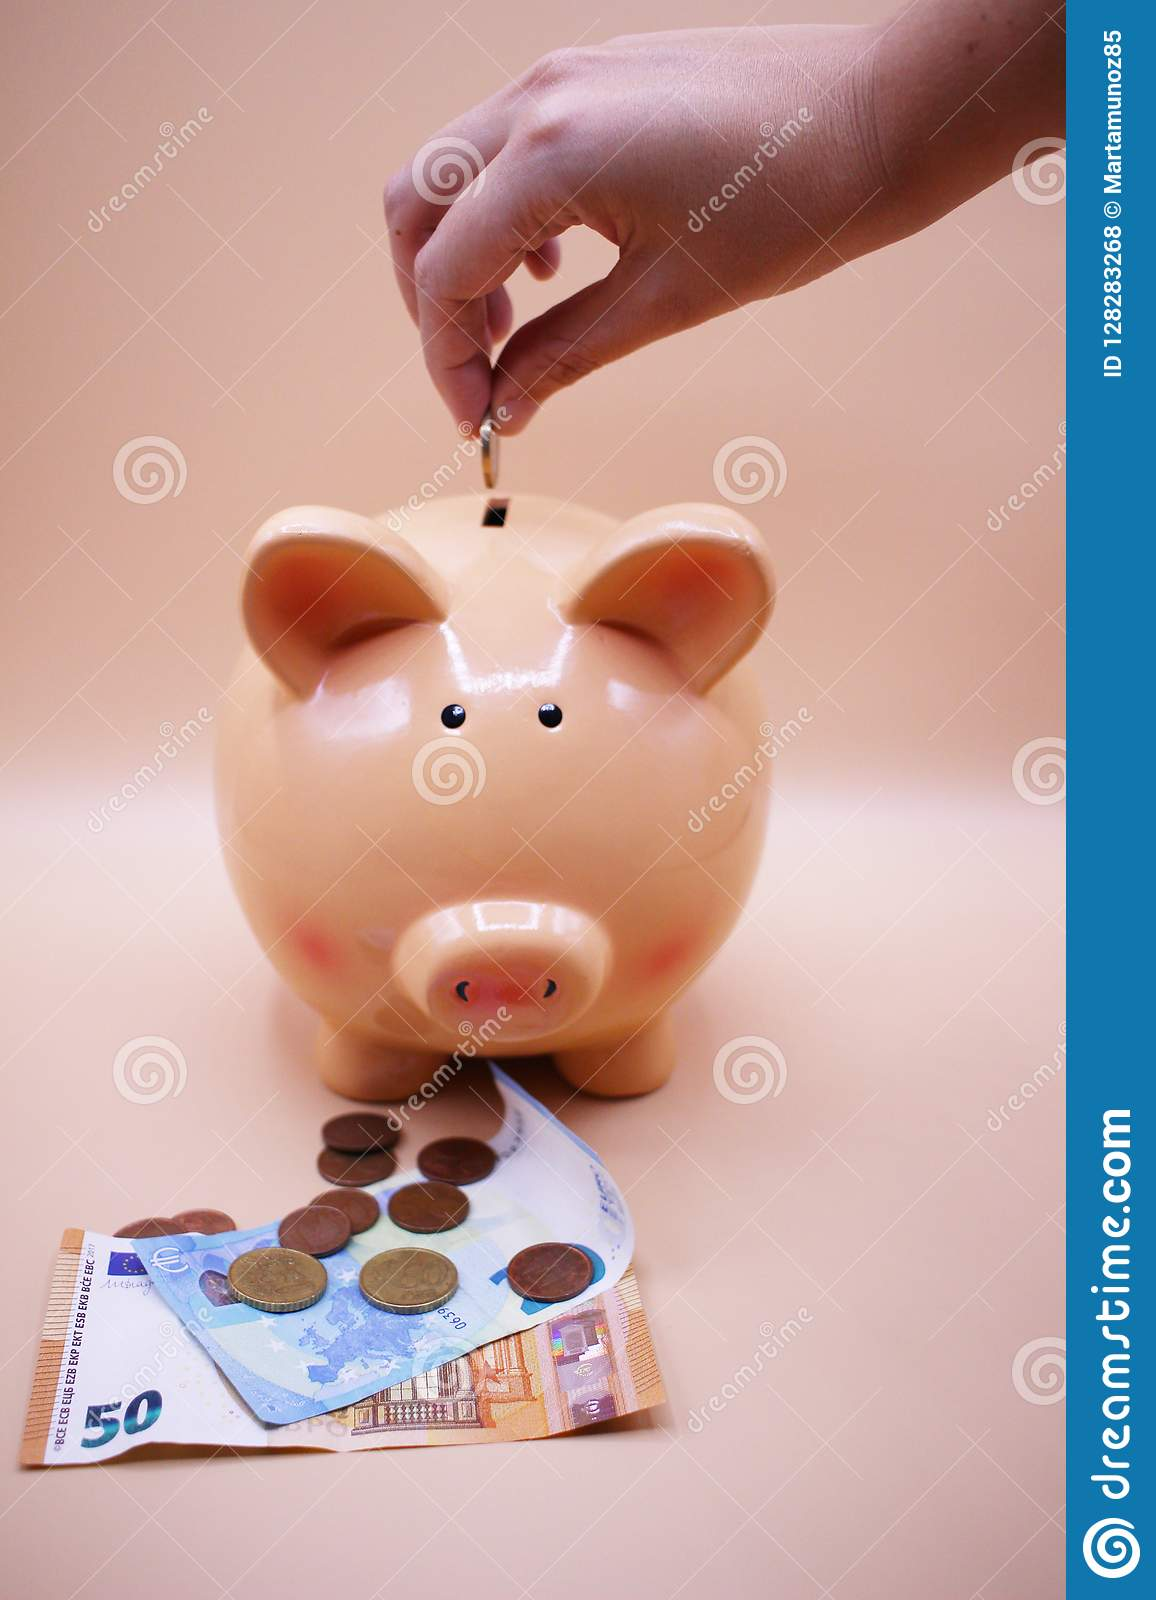 Hand Introducing A Coin Into Piggy Bank With Savings Stock